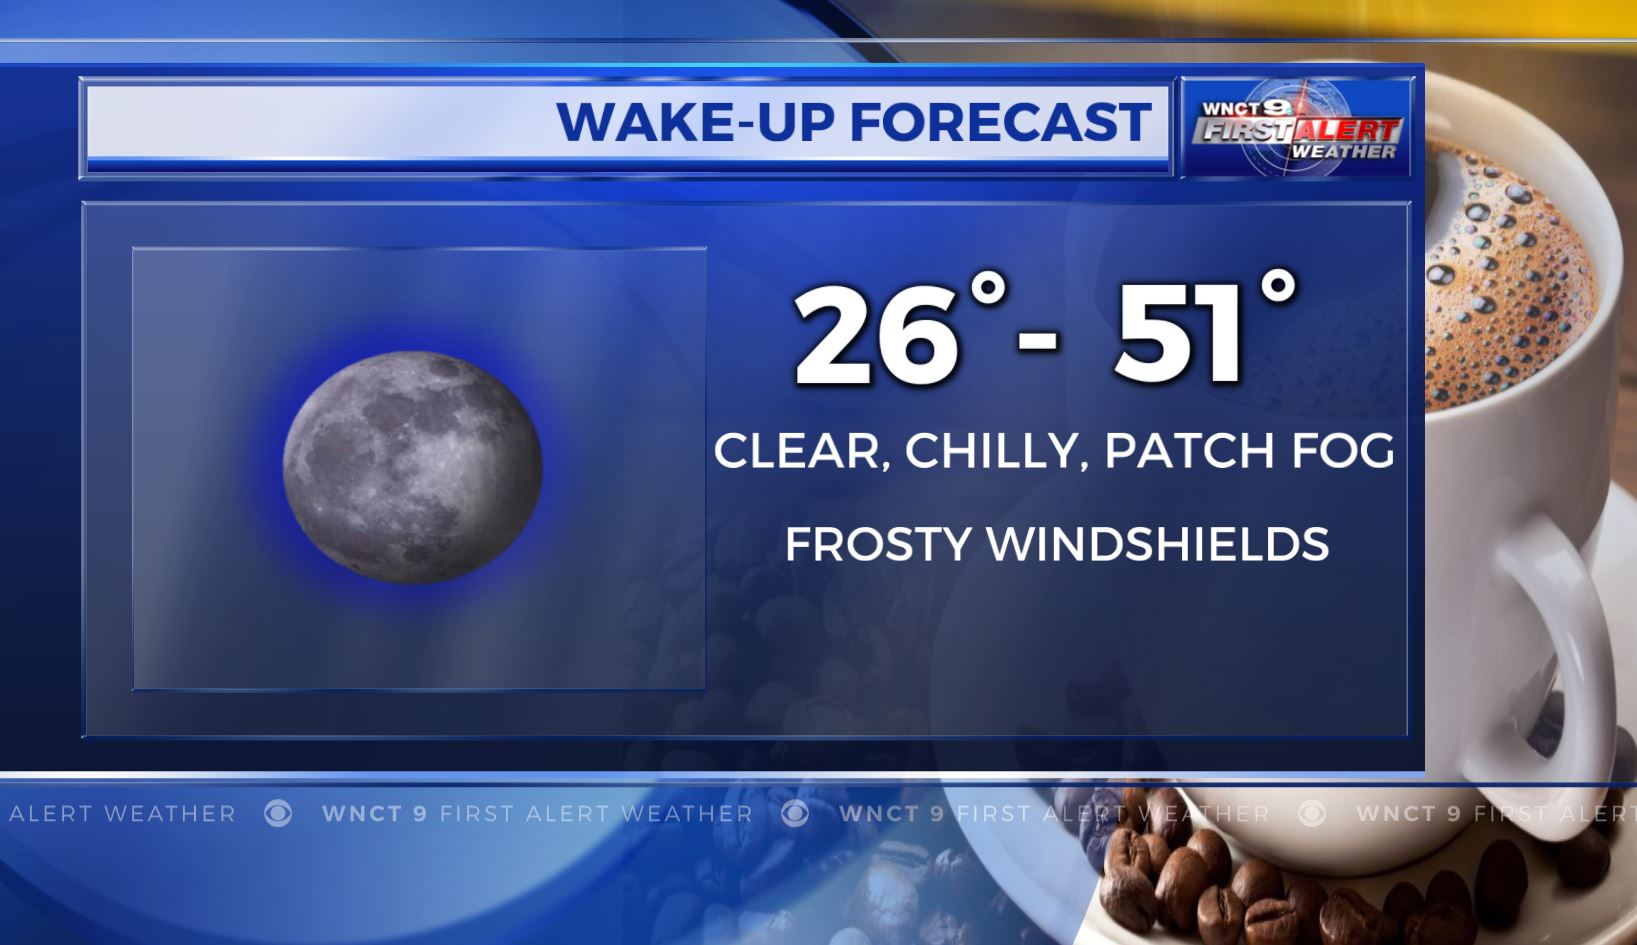 First Warning Weather: Warmer Temps On The Way